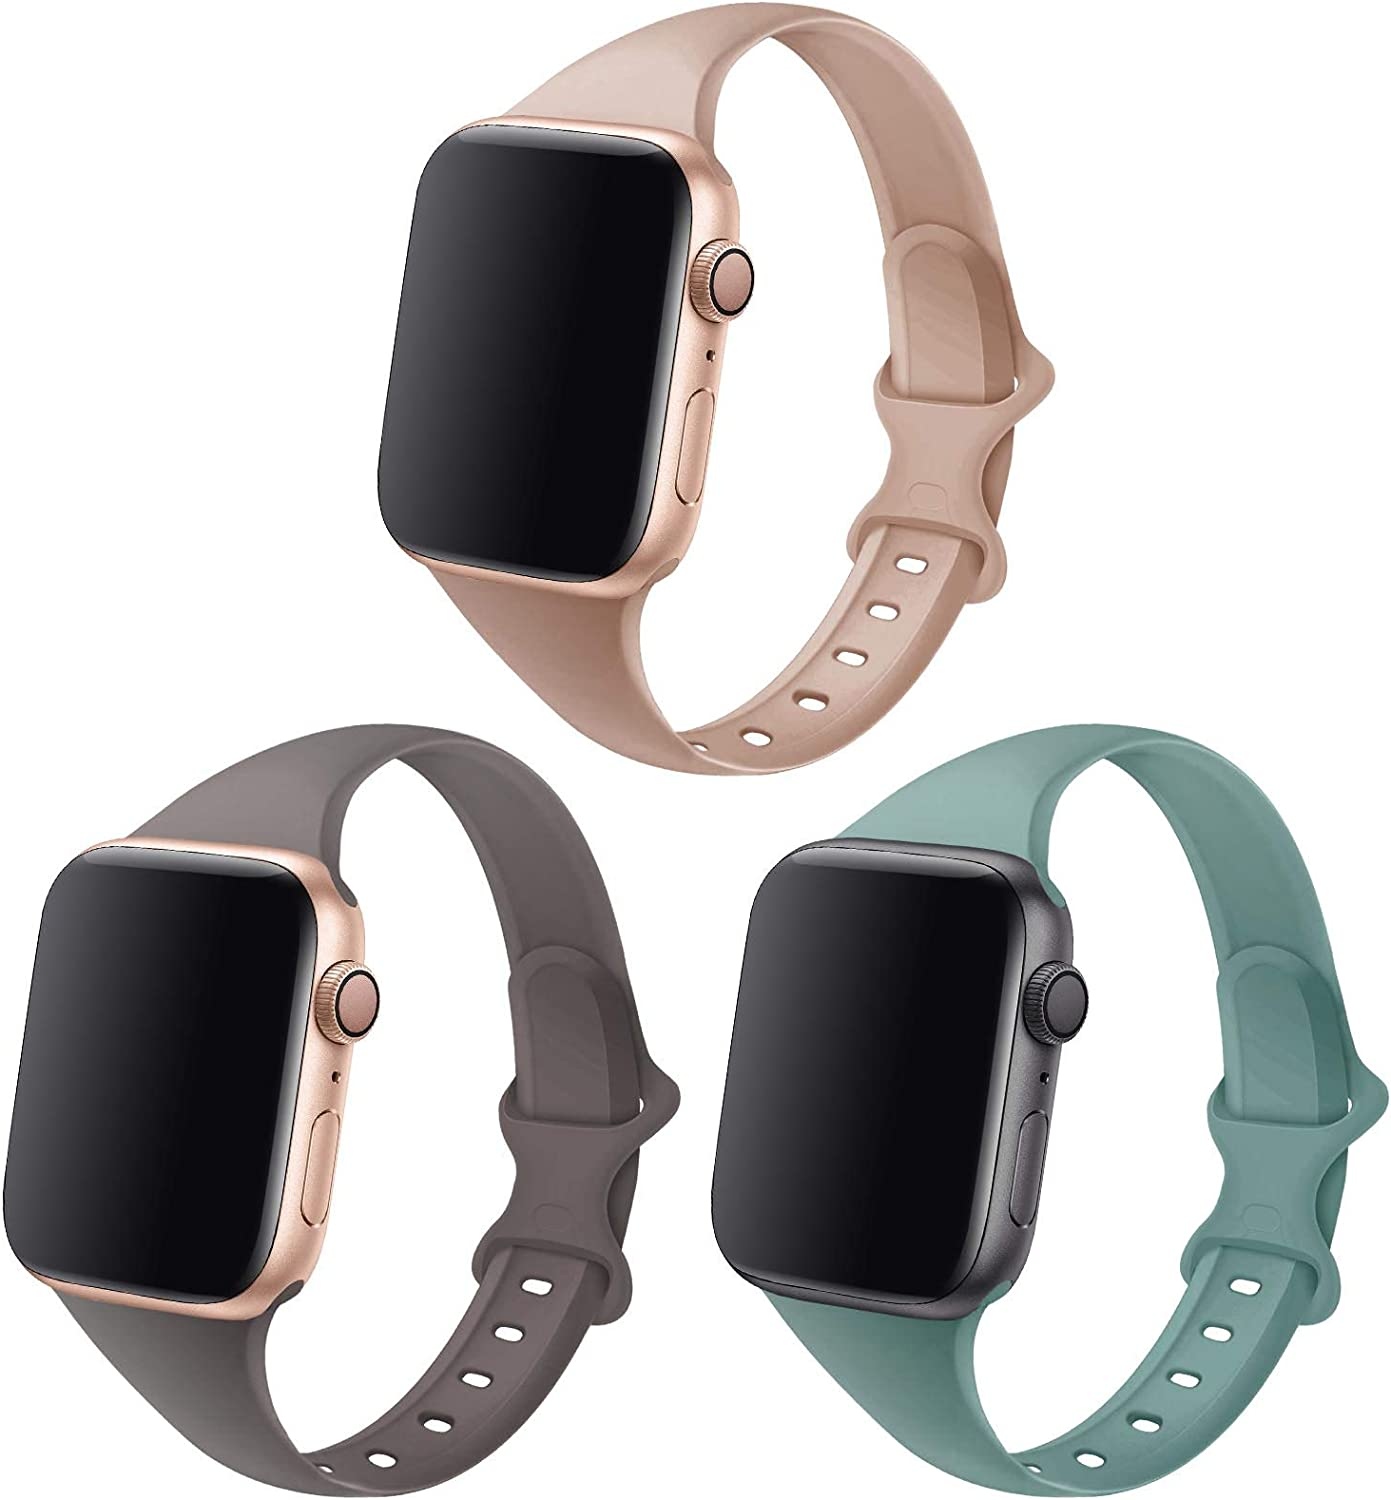 QRose Bands Compatible with Apple Watch 38mm 40mm 42mm 44mm, 3 Pack Slim Thin Narrow Replacement Silicone Sport Accessory Strap Wristband for iWatch Series SE 1/2/3/4/5/6 Women Men